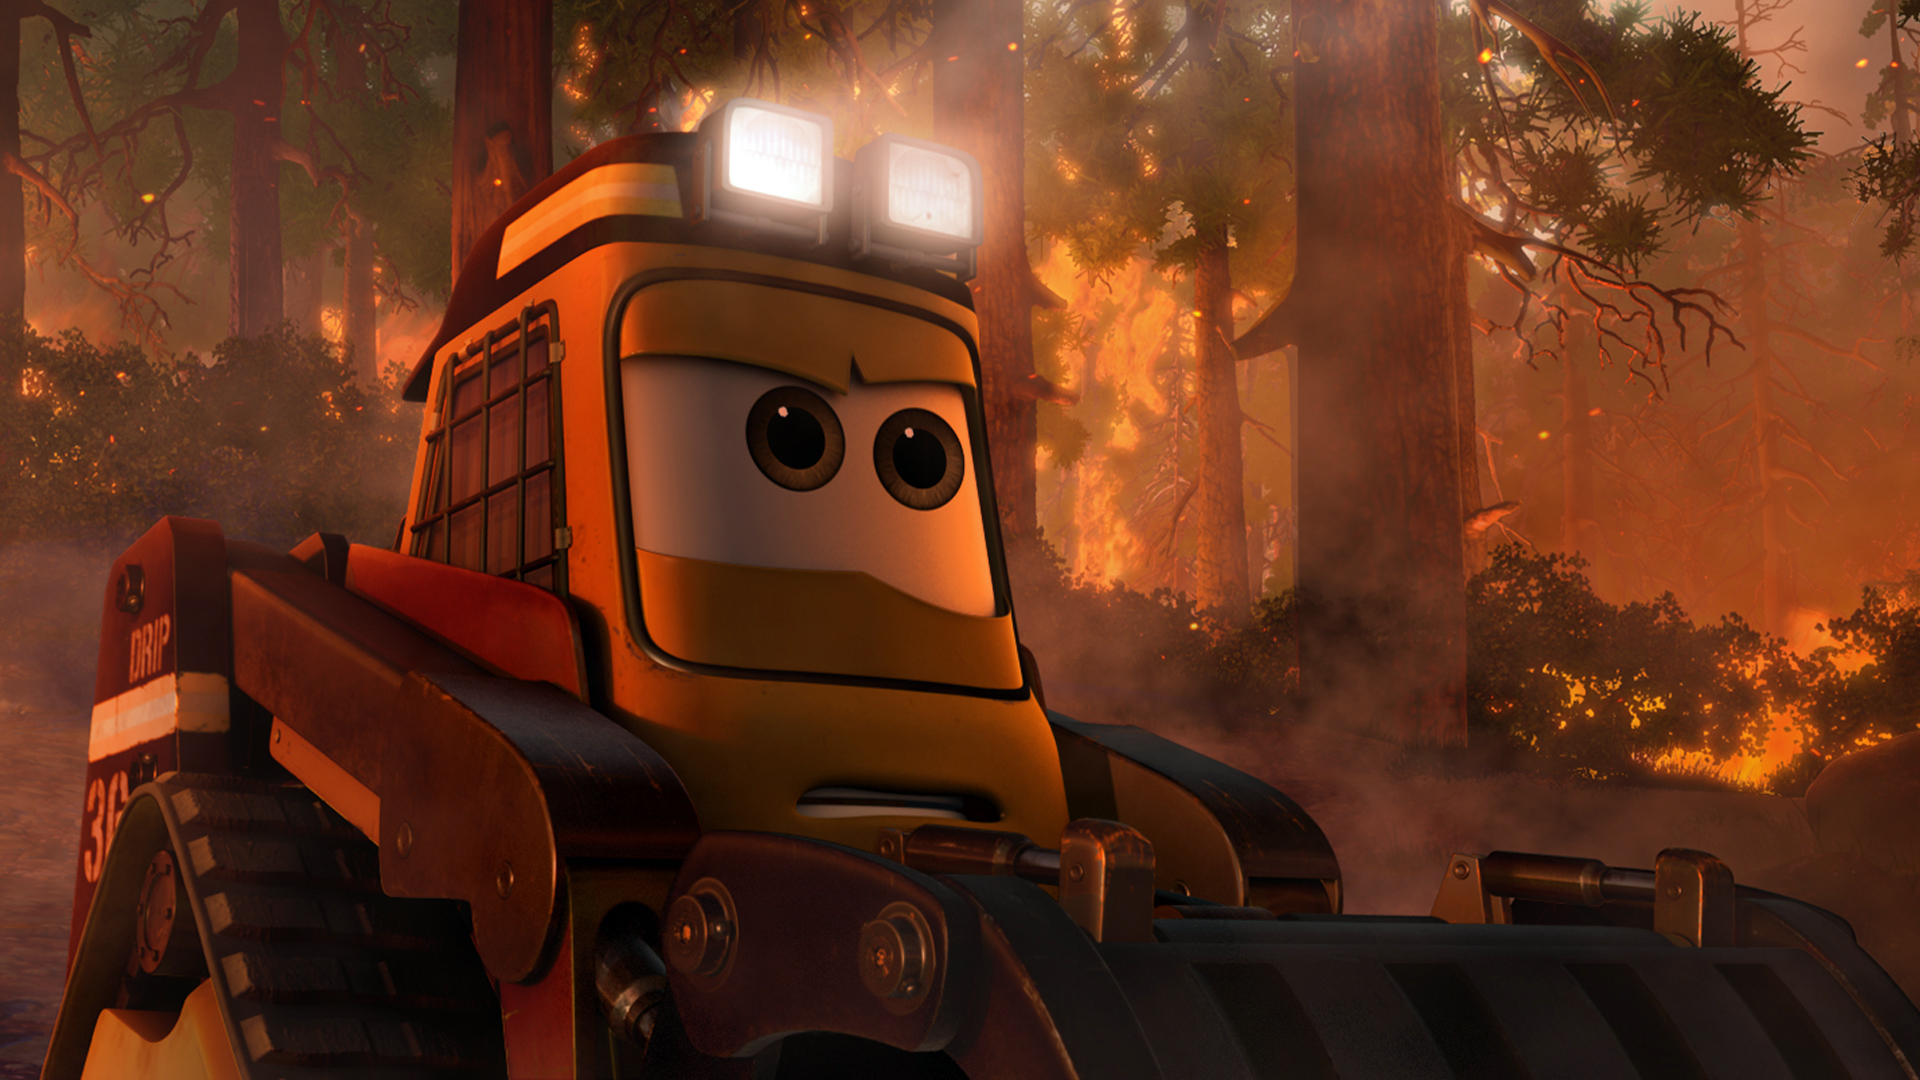 Drip planes fire rescue wallpaper hd drip planes fire and rescue movie voltagebd Images